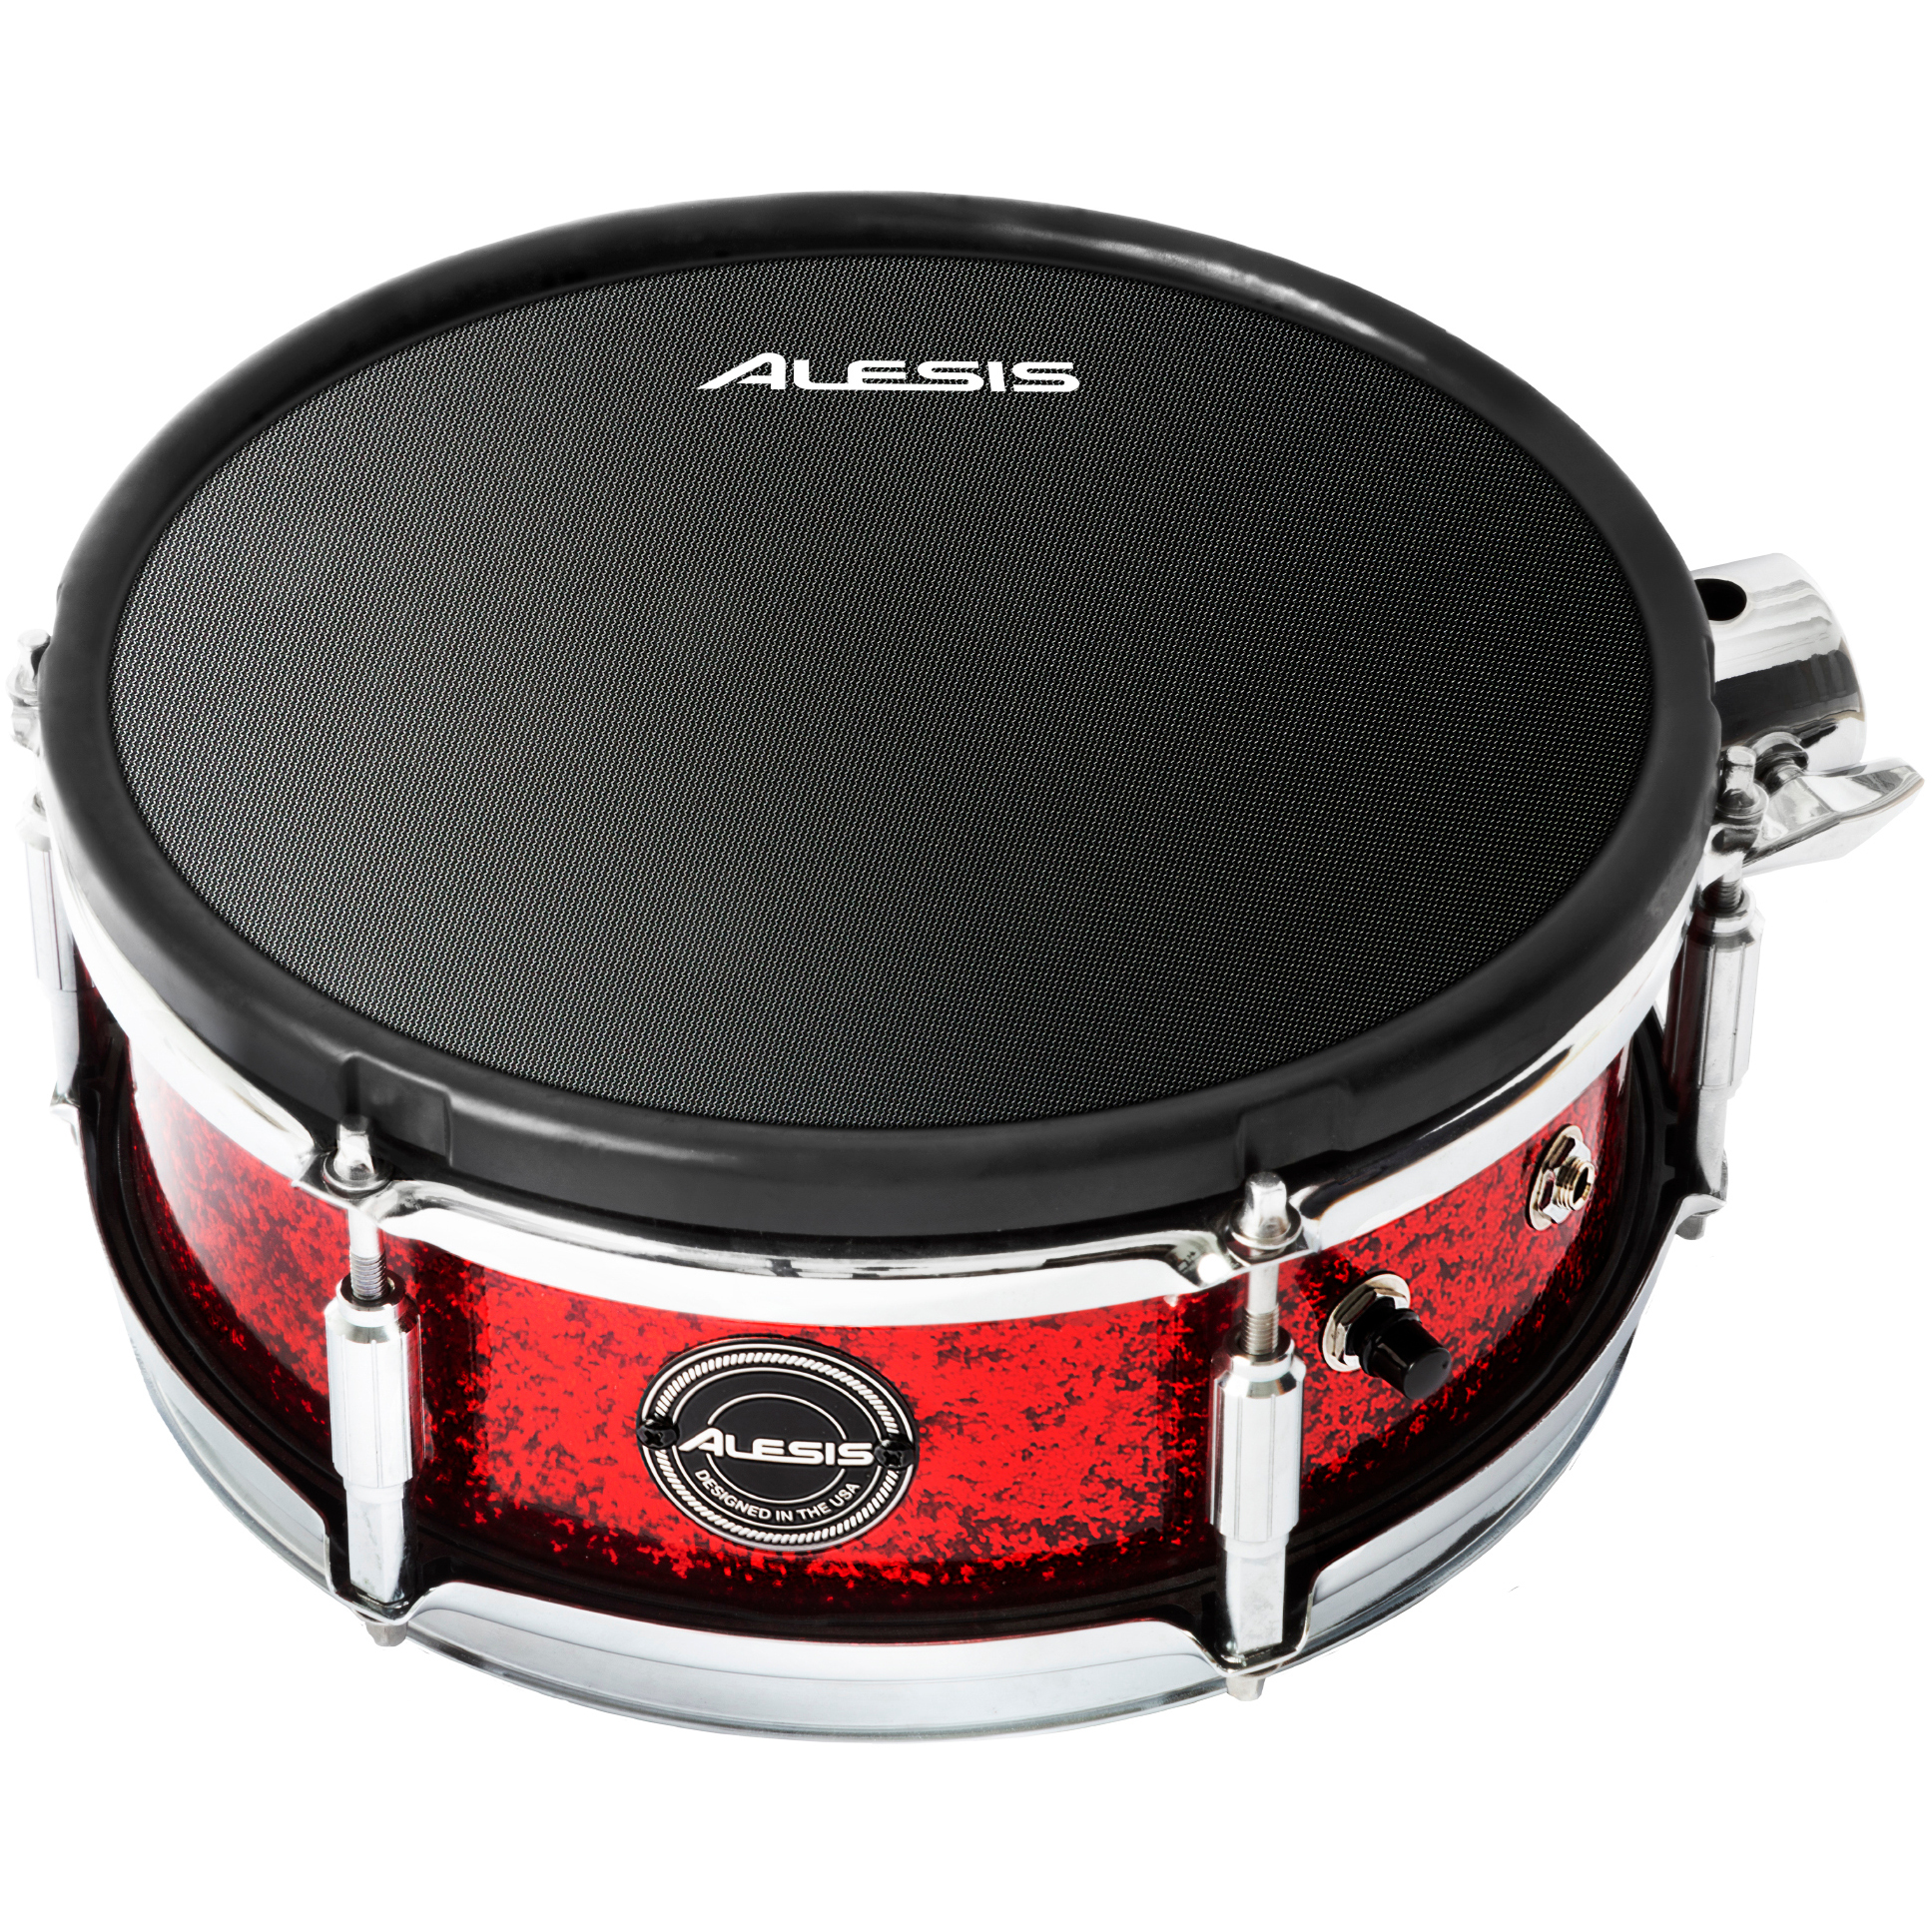 Alesis Strike 10 inch dual zone electronic tom with hardware